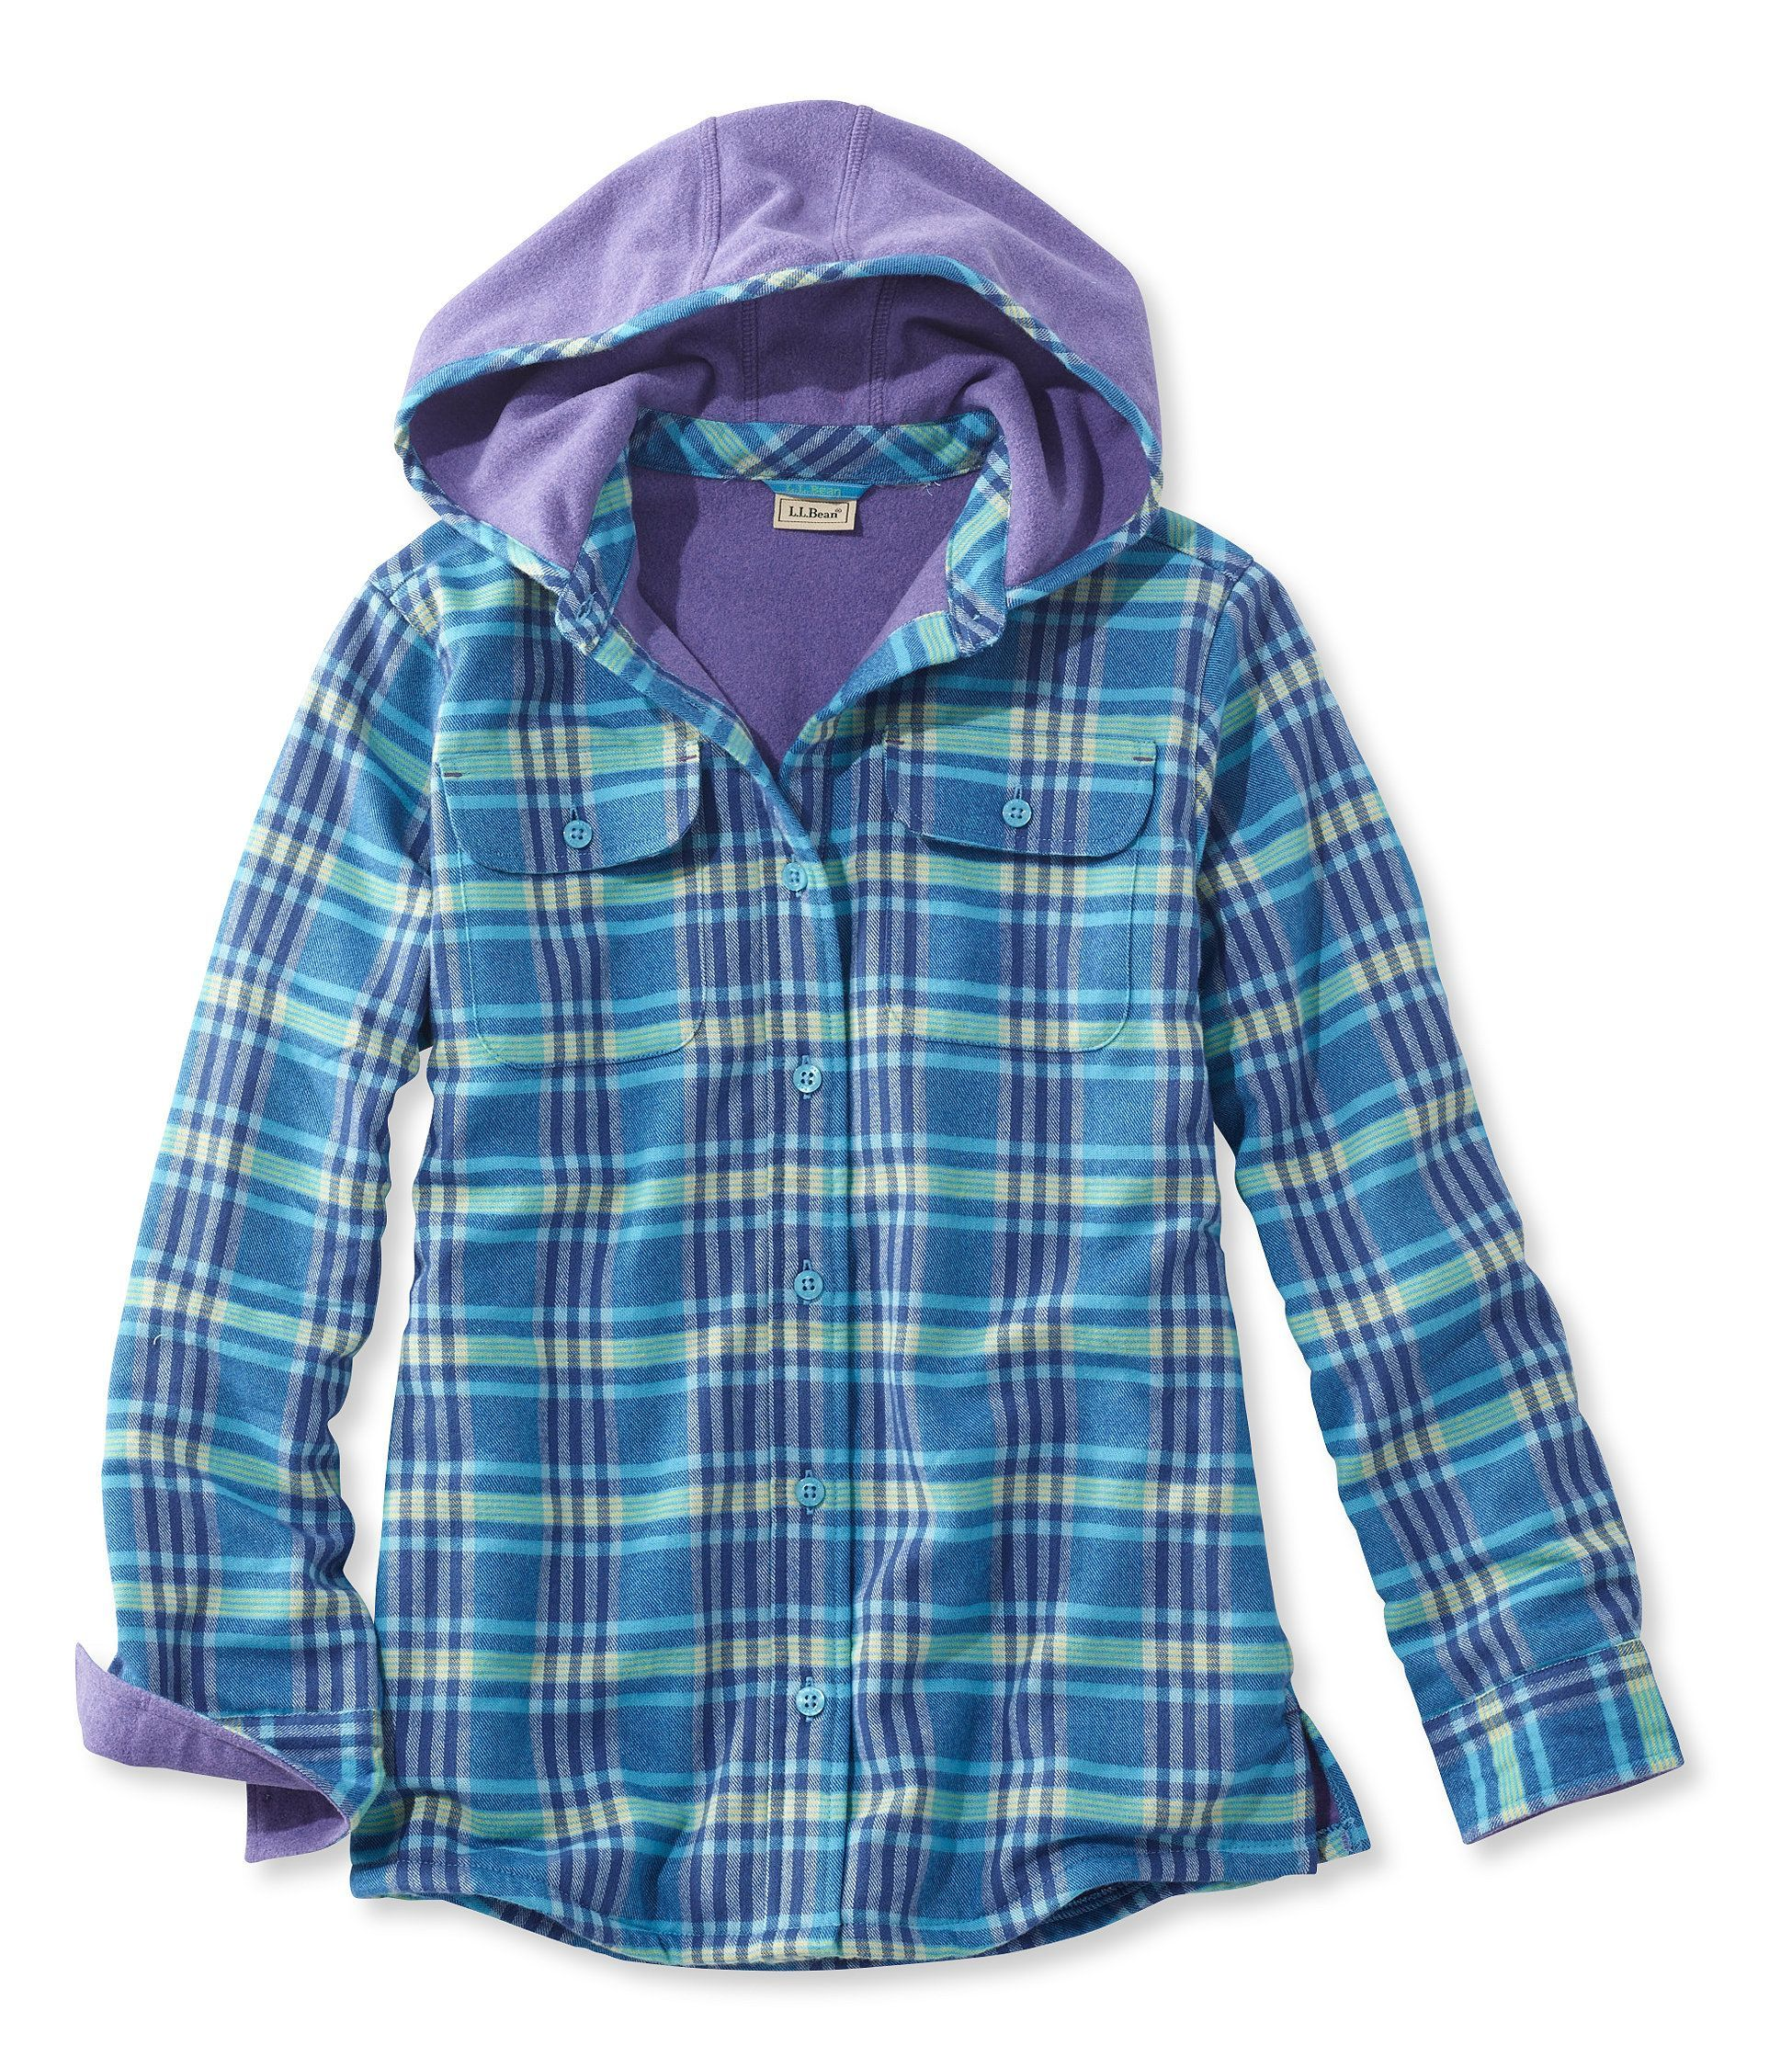 Fleece vs flannel  Girlsu FleeceLined Flannel Shirt  Products  Pinterest  Products